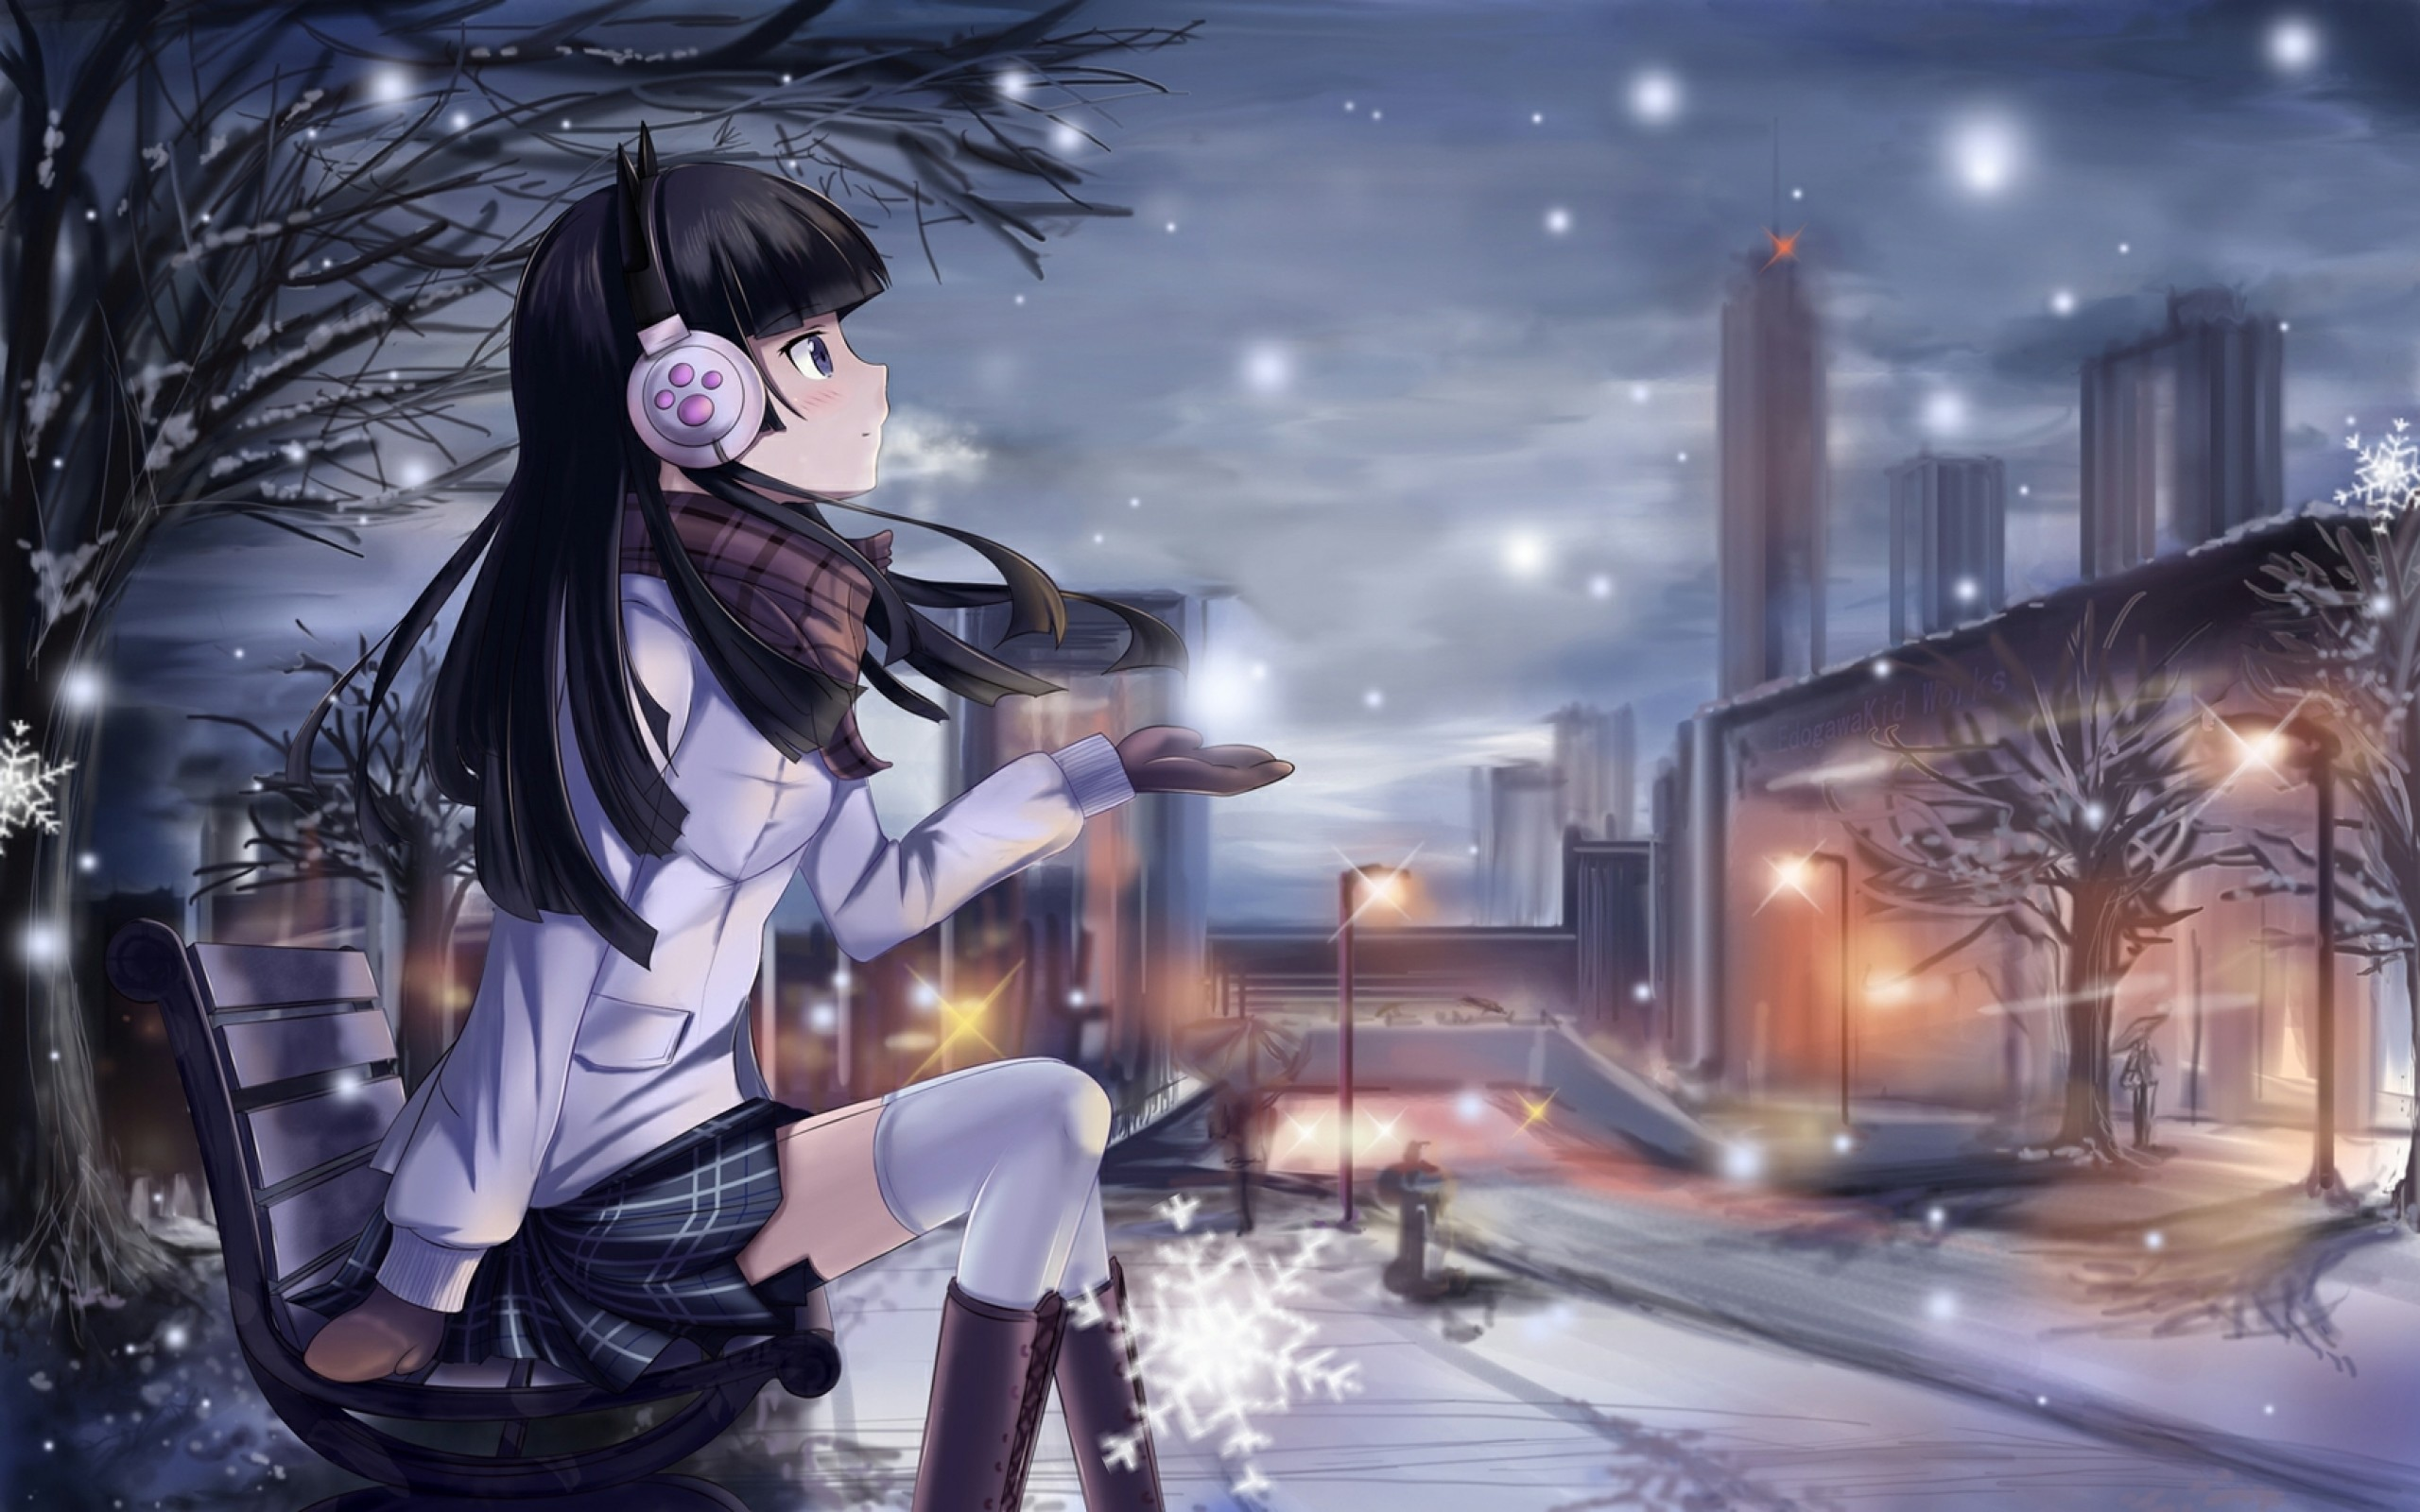 Anime Beauty Girl Awesome Photo Wallpaper #35464 px 1.87 MB Anime  Anime Beauty Girl